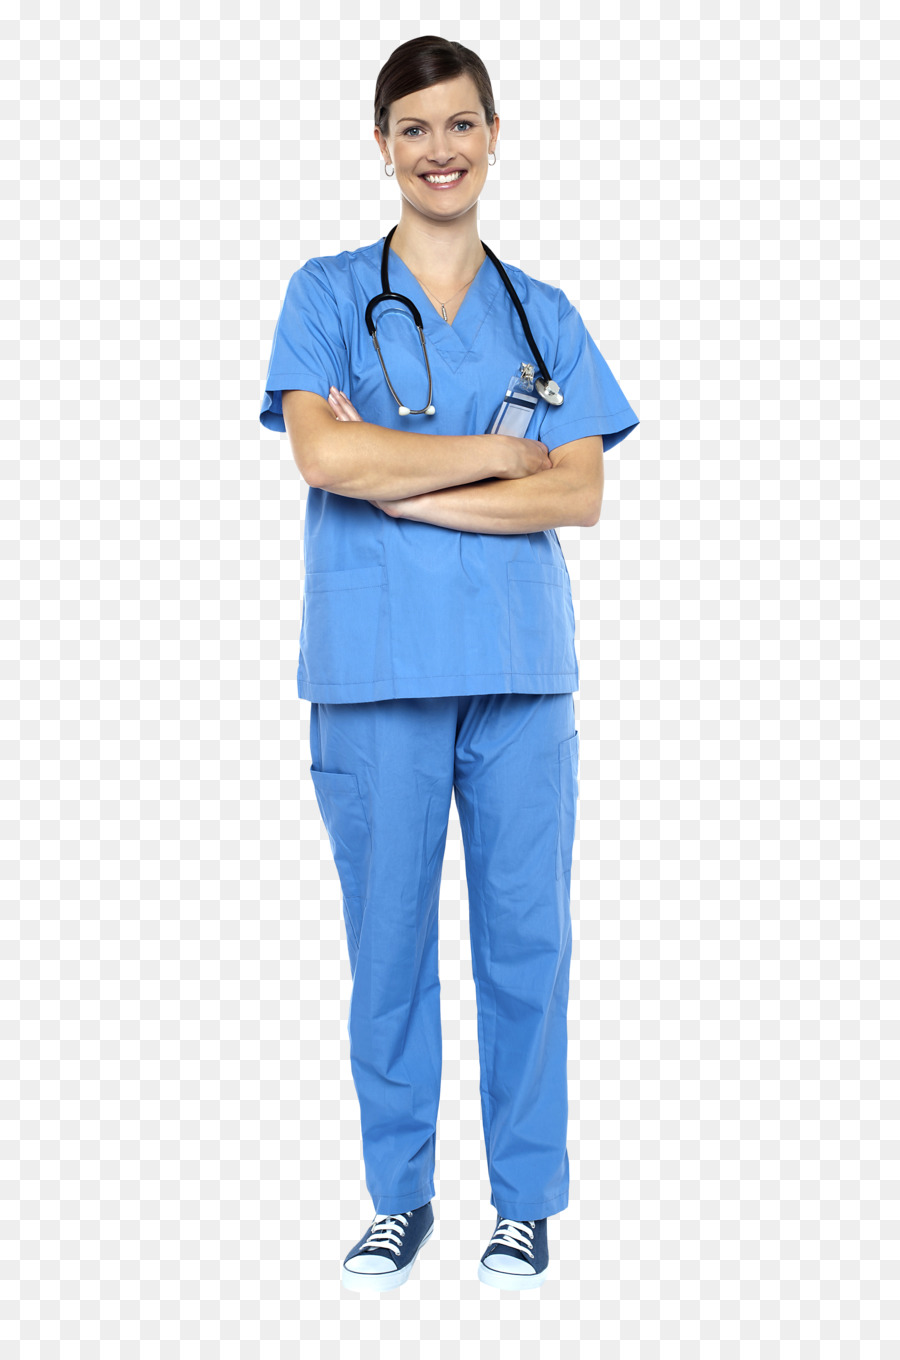 Nurse with blue scrubs and steschope clipart graphic freeuse stock Nurse Cartoon clipart - Clothing, Stethoscope, Uniform ... graphic freeuse stock